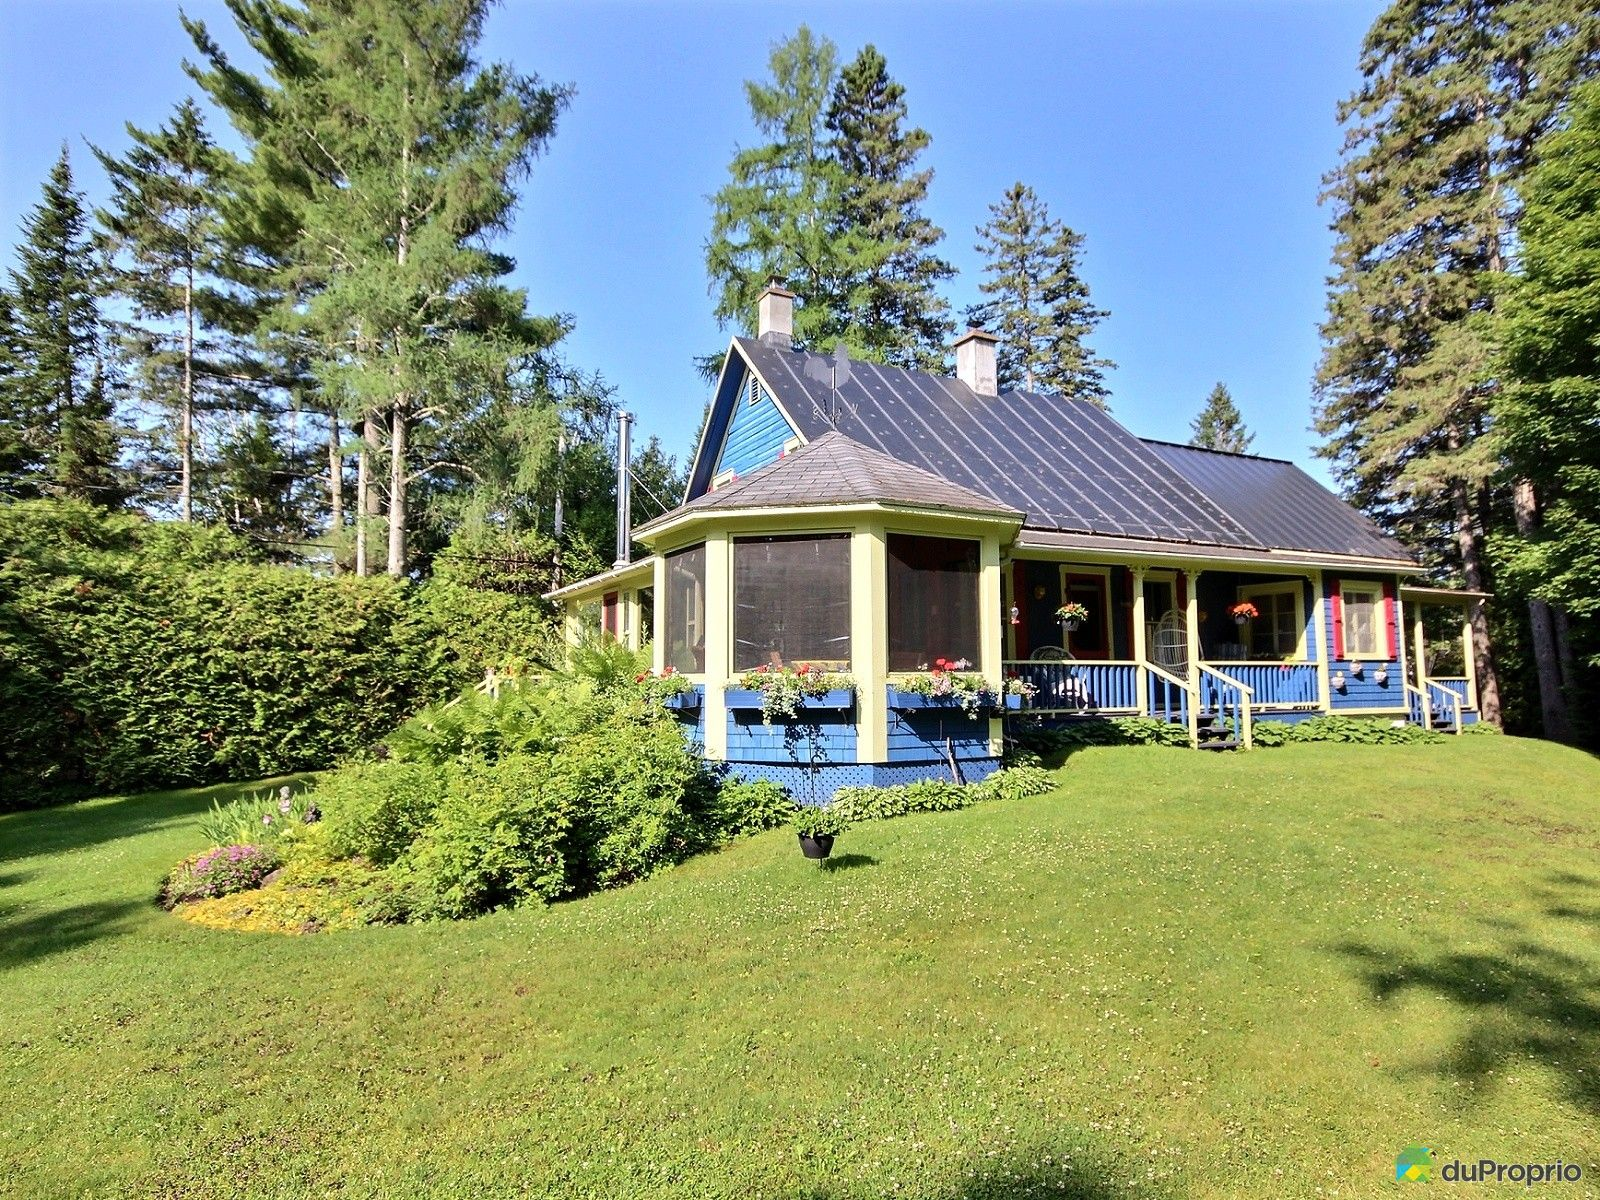 Maison a vendre lac morin quebec proprietes etangs a for Acheter maison quebec canada